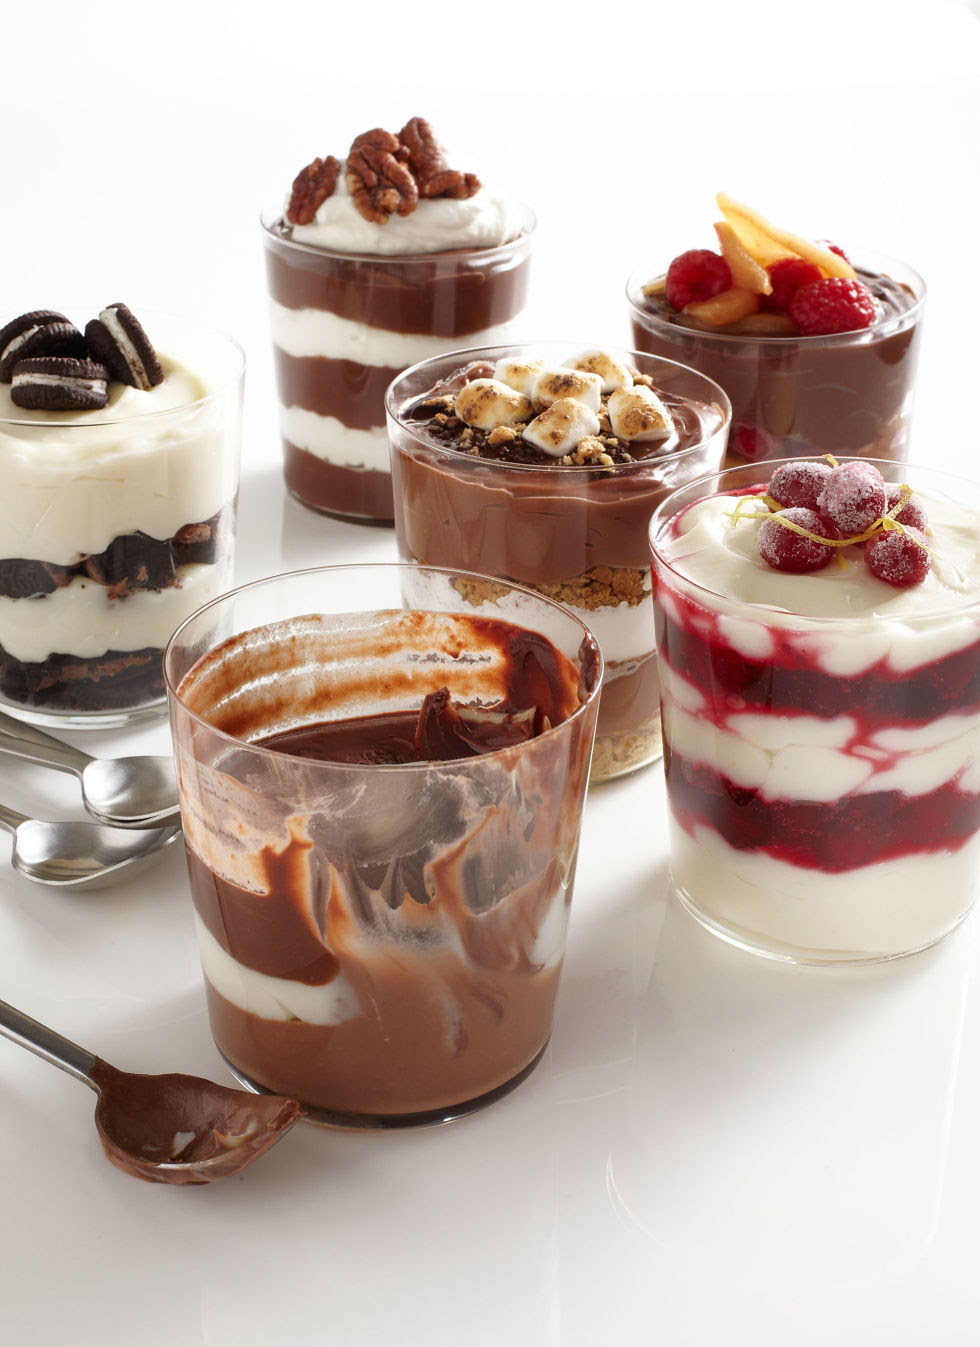 Chocolate Pudding Recipes - Homemade Chocolate Pudding ...